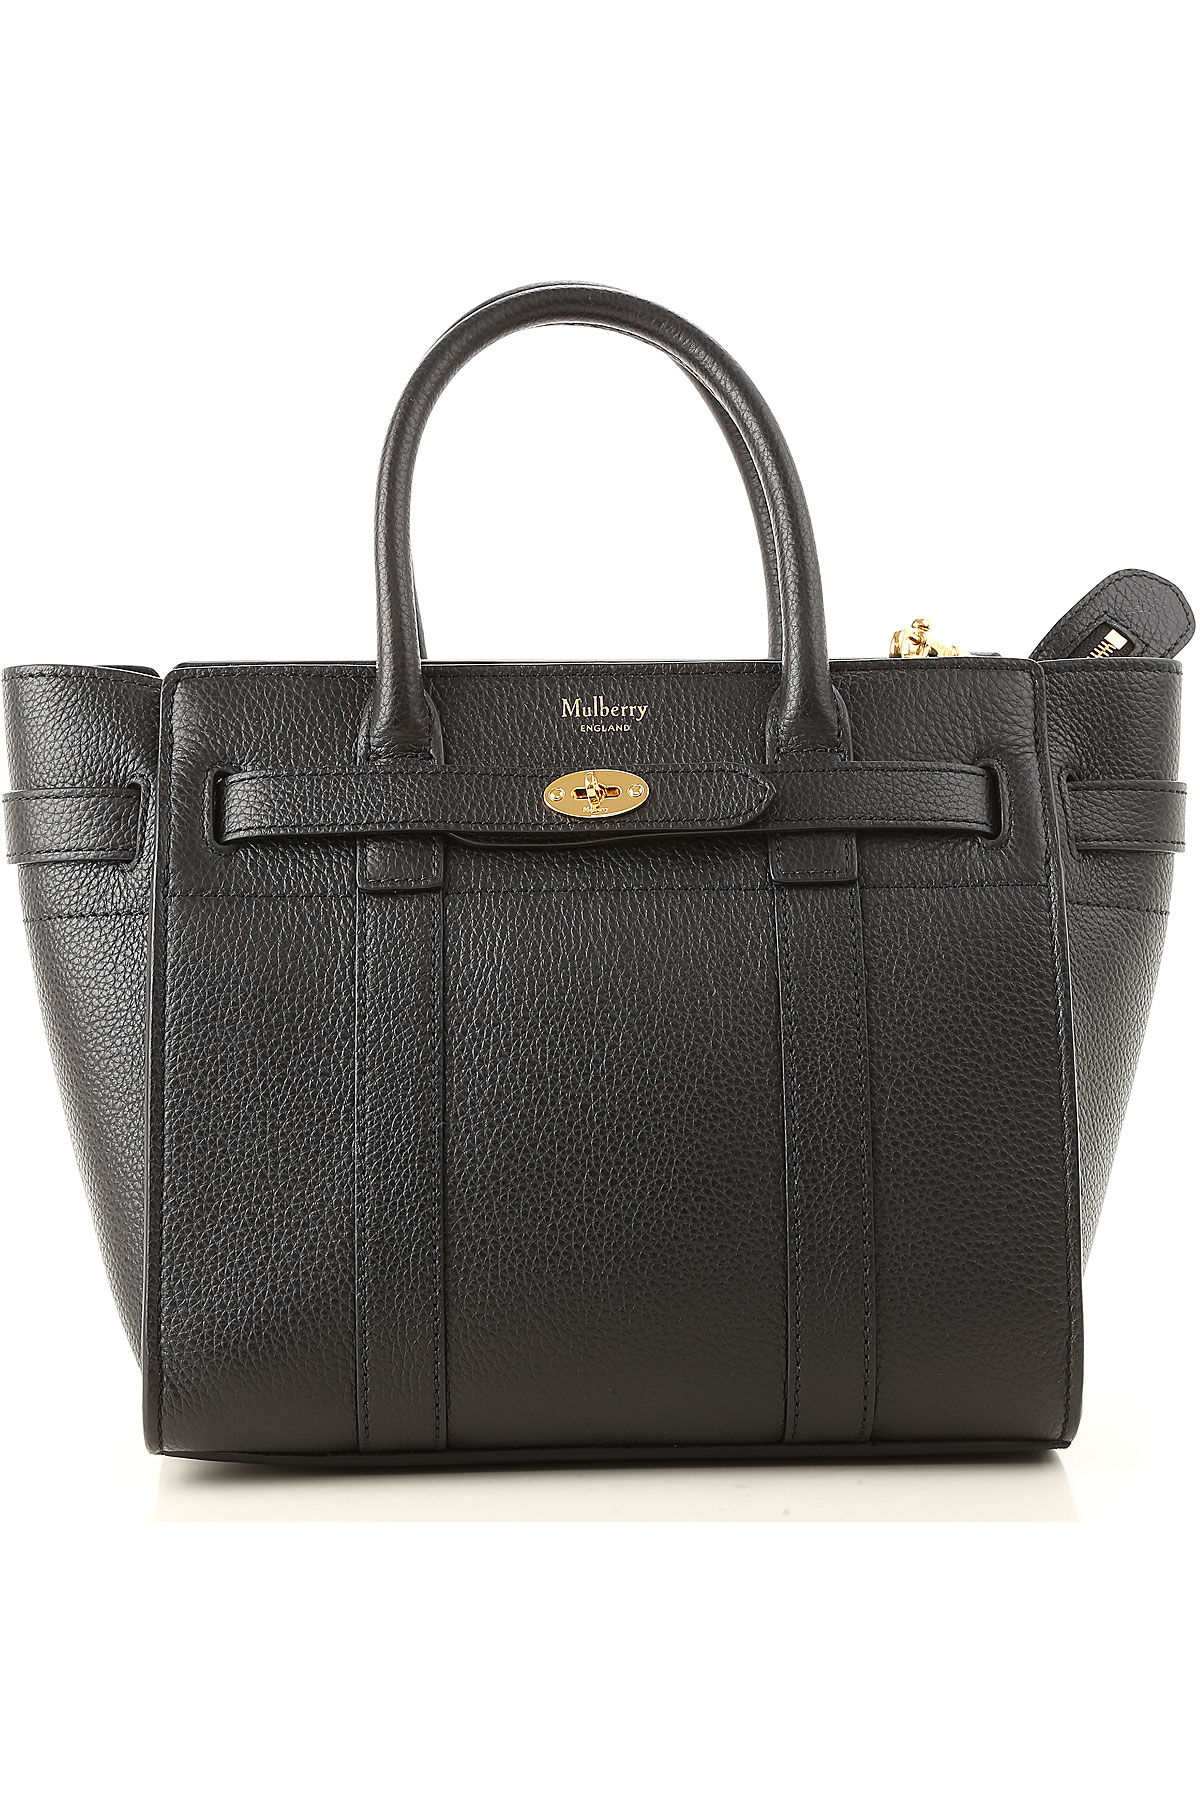 eb90b7dc95 Handbags Mulberry, Style code: hh4949205-a100-